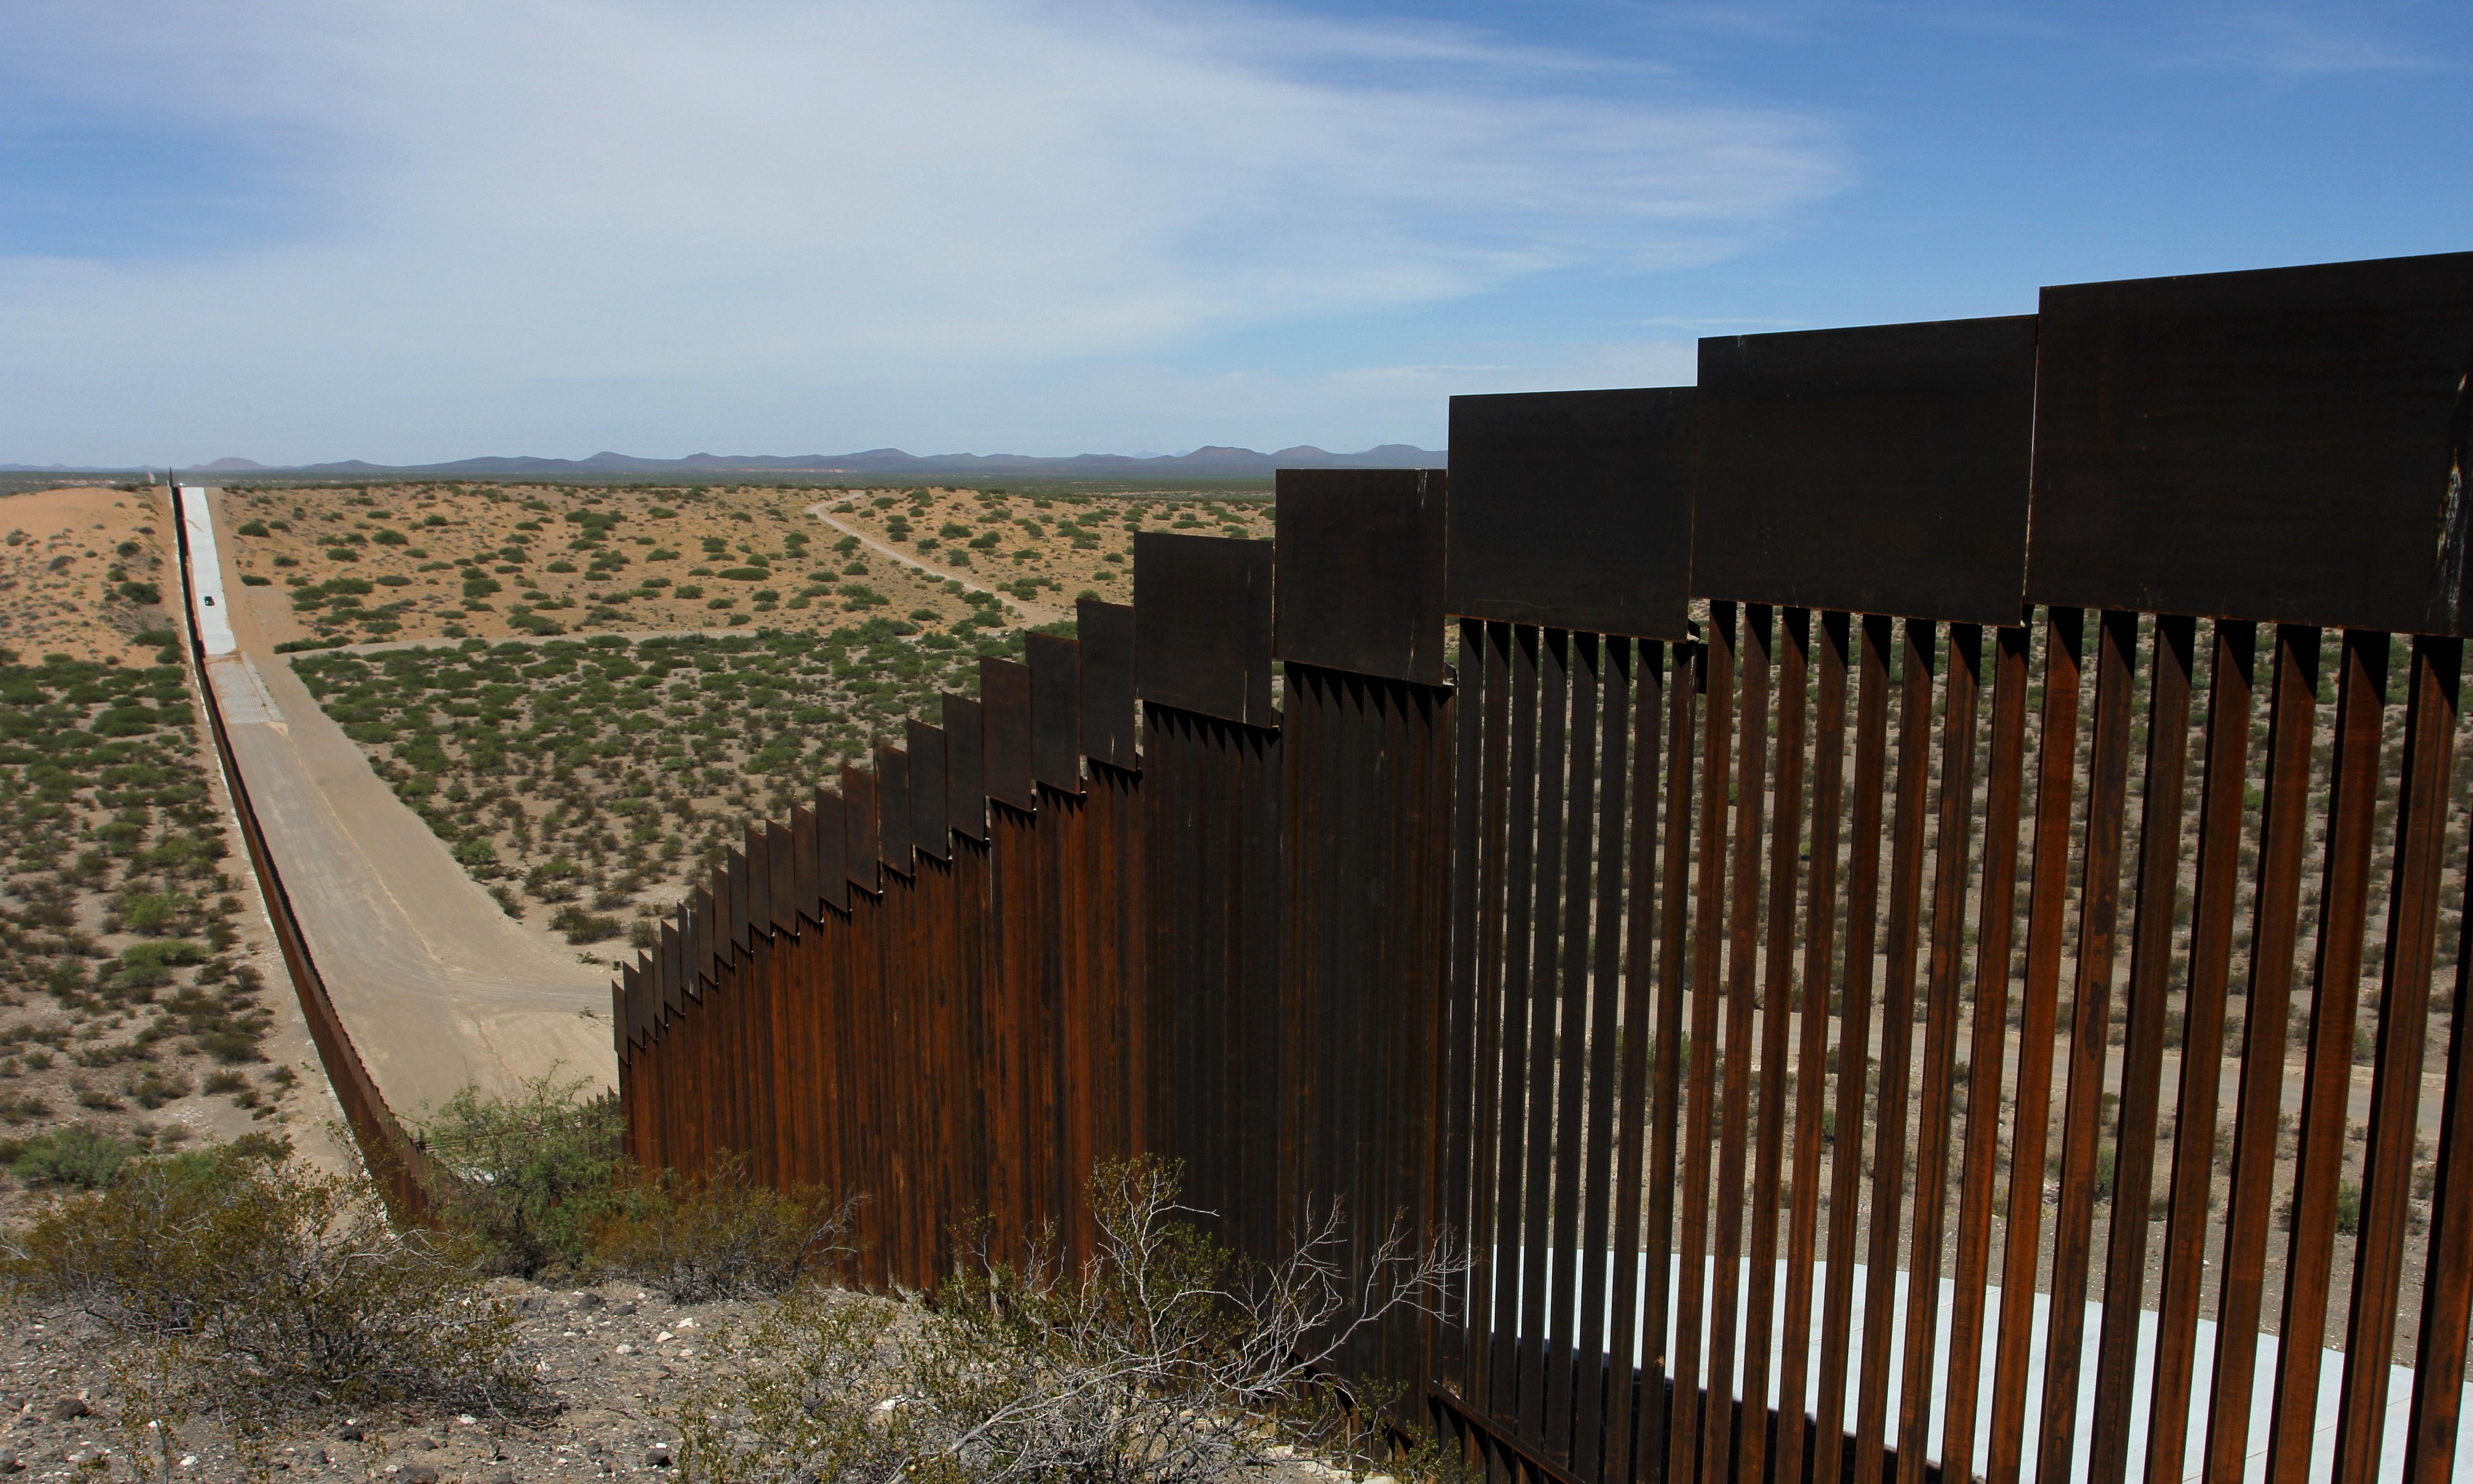 Back to the border of misery: Amexica revisited 10 years on